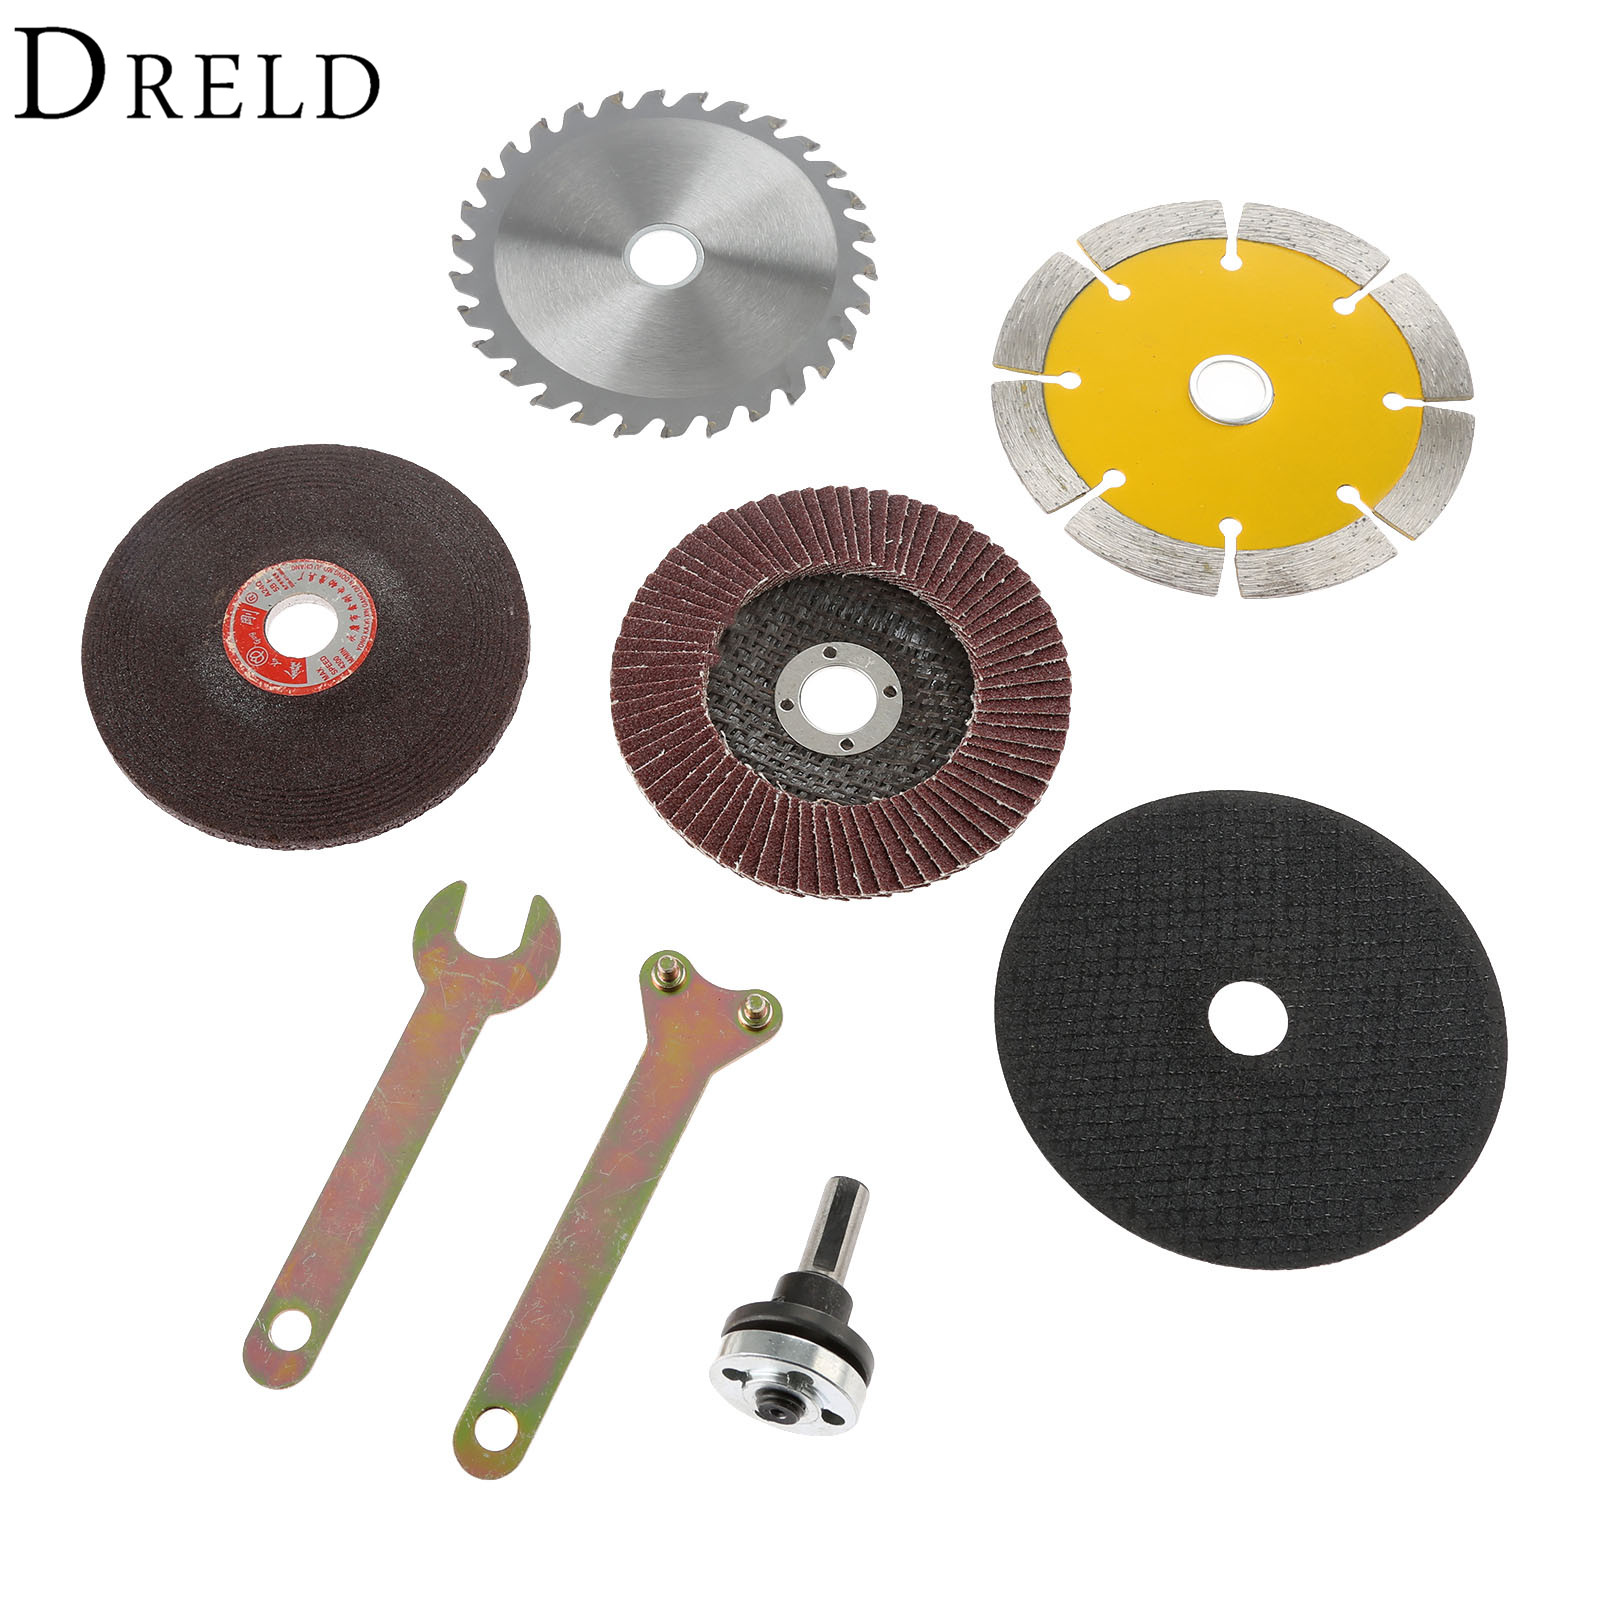 цена на 8Pcs Cutting Polishing Grinding Wheel Conversion Shank Power Tools Accessories for Electric Drill Change to Angle Grinder Cutter